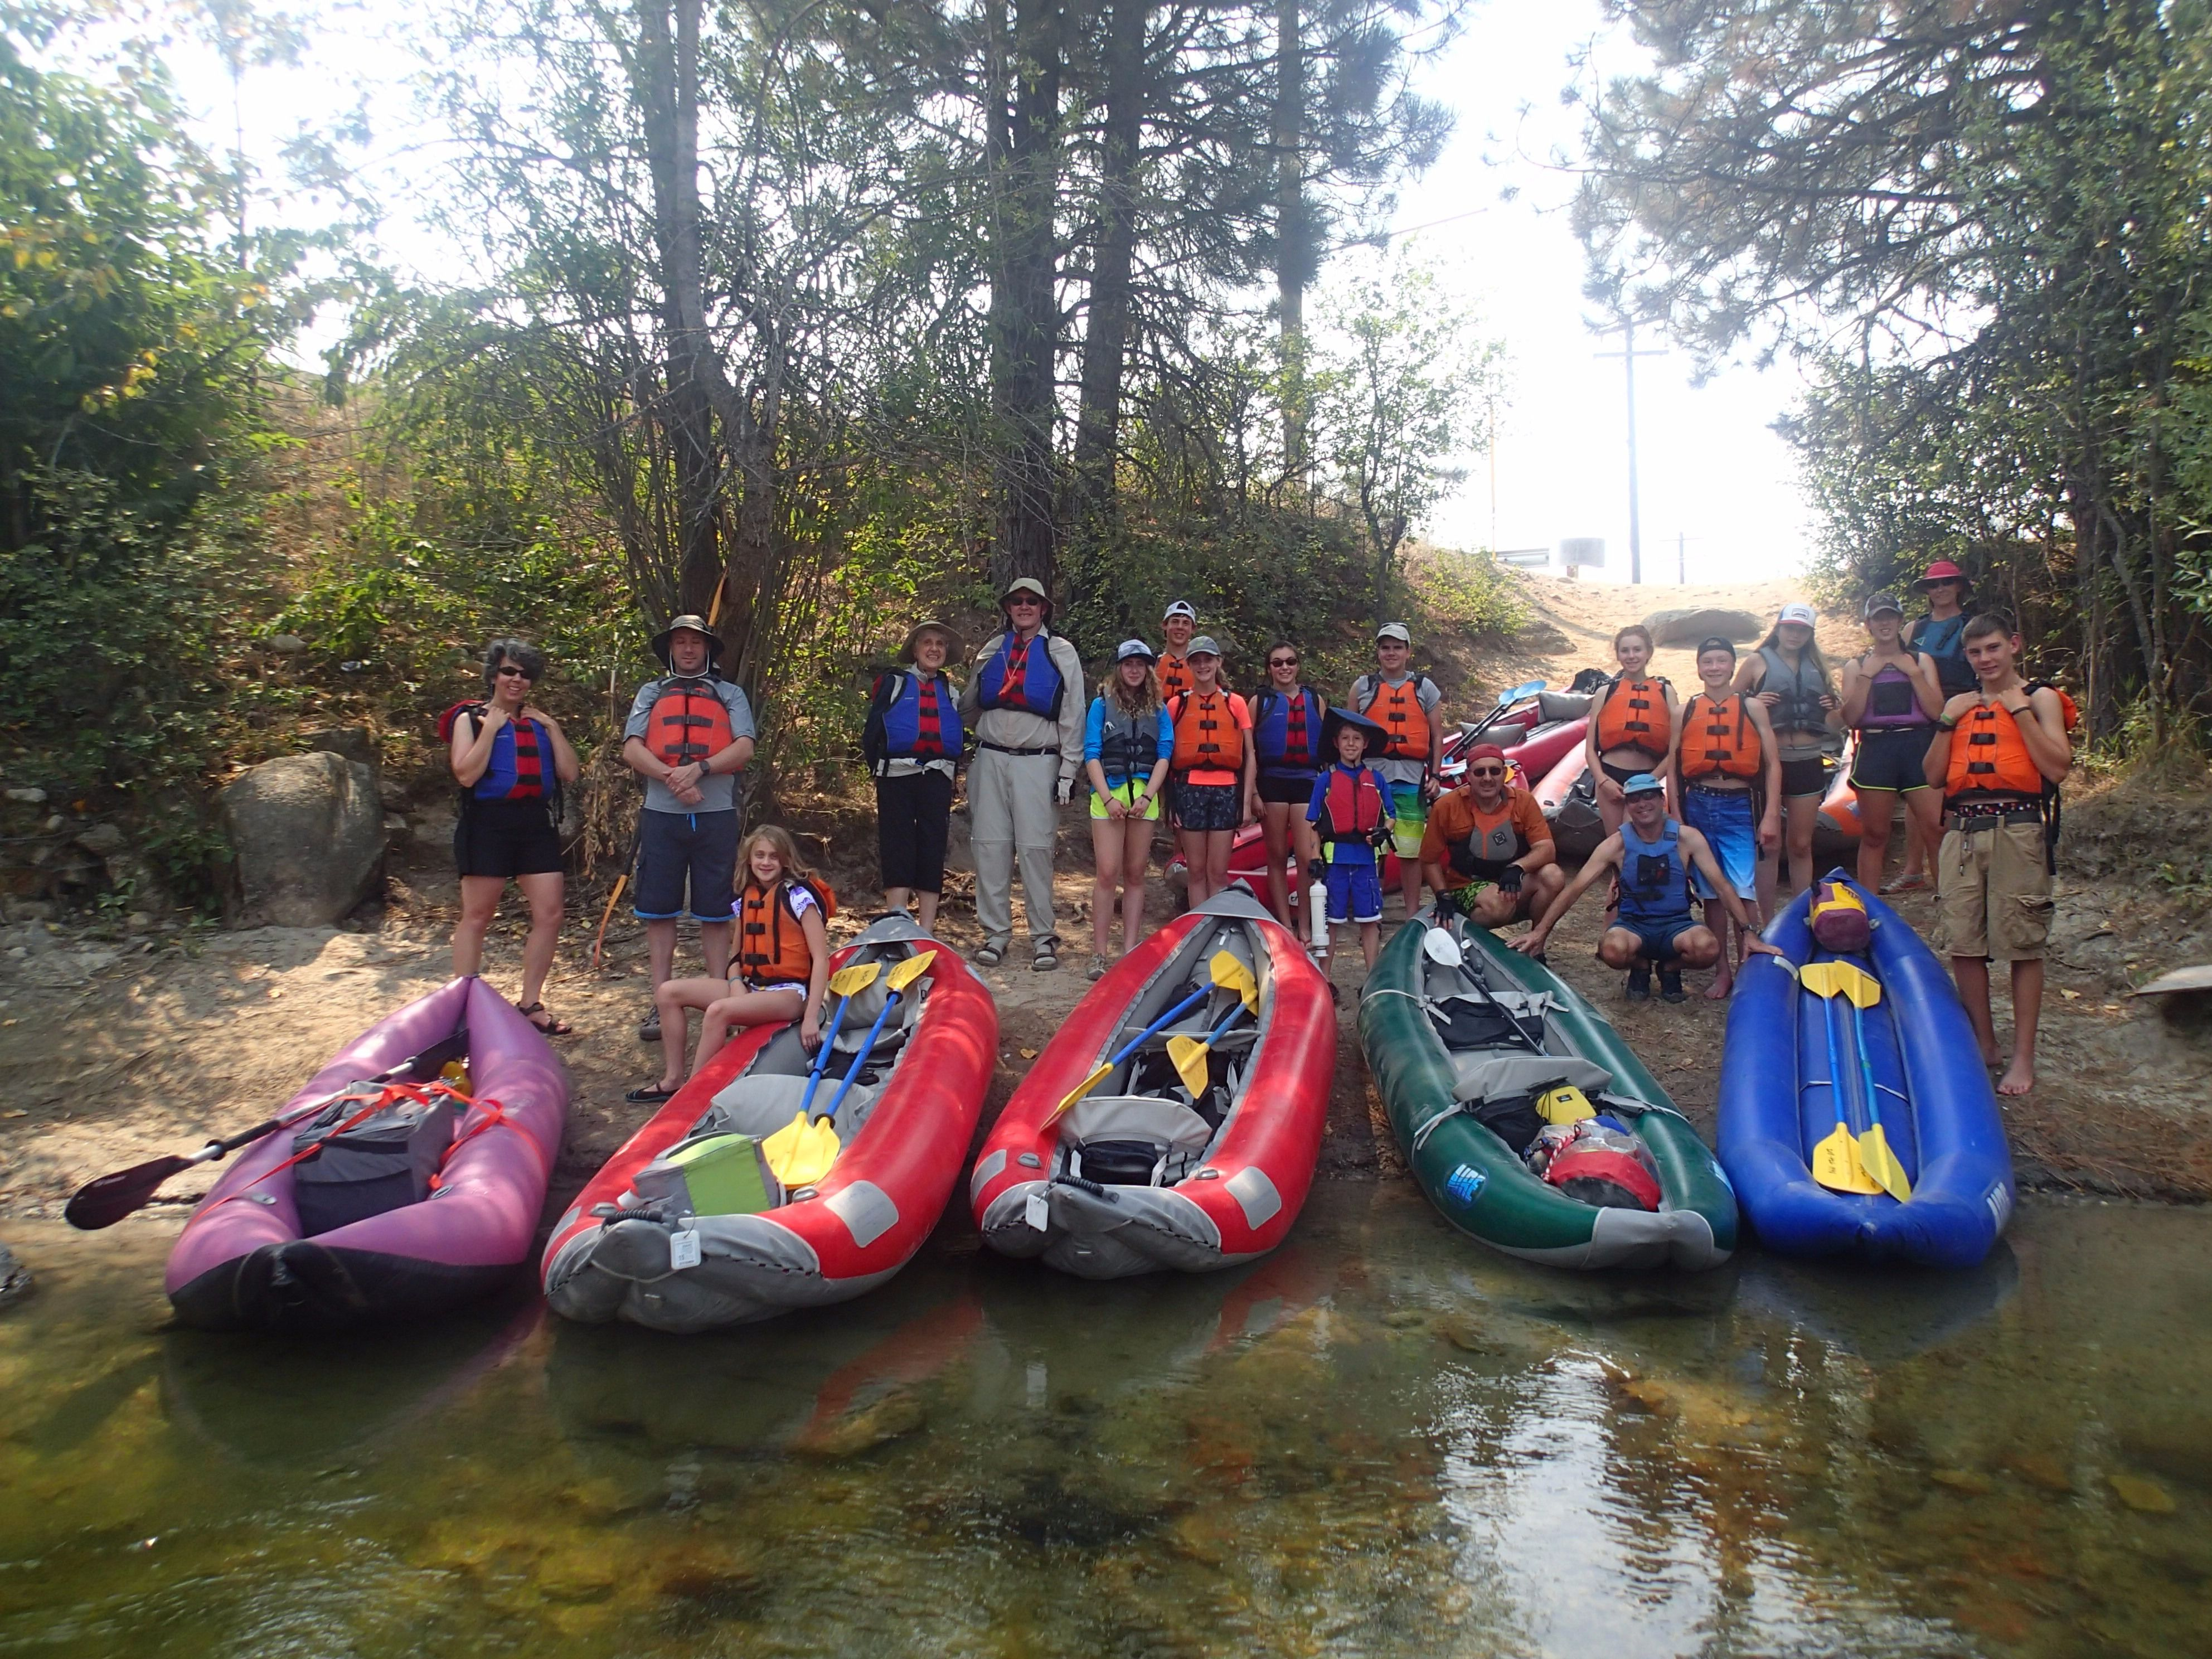 River Rabbi: Rabbi Dan Fink (kneeling in front of green boat) leads members of Ahavath Beth Israel in Boise on a rafting trip on the South Fork of the Payette River in August 2015.